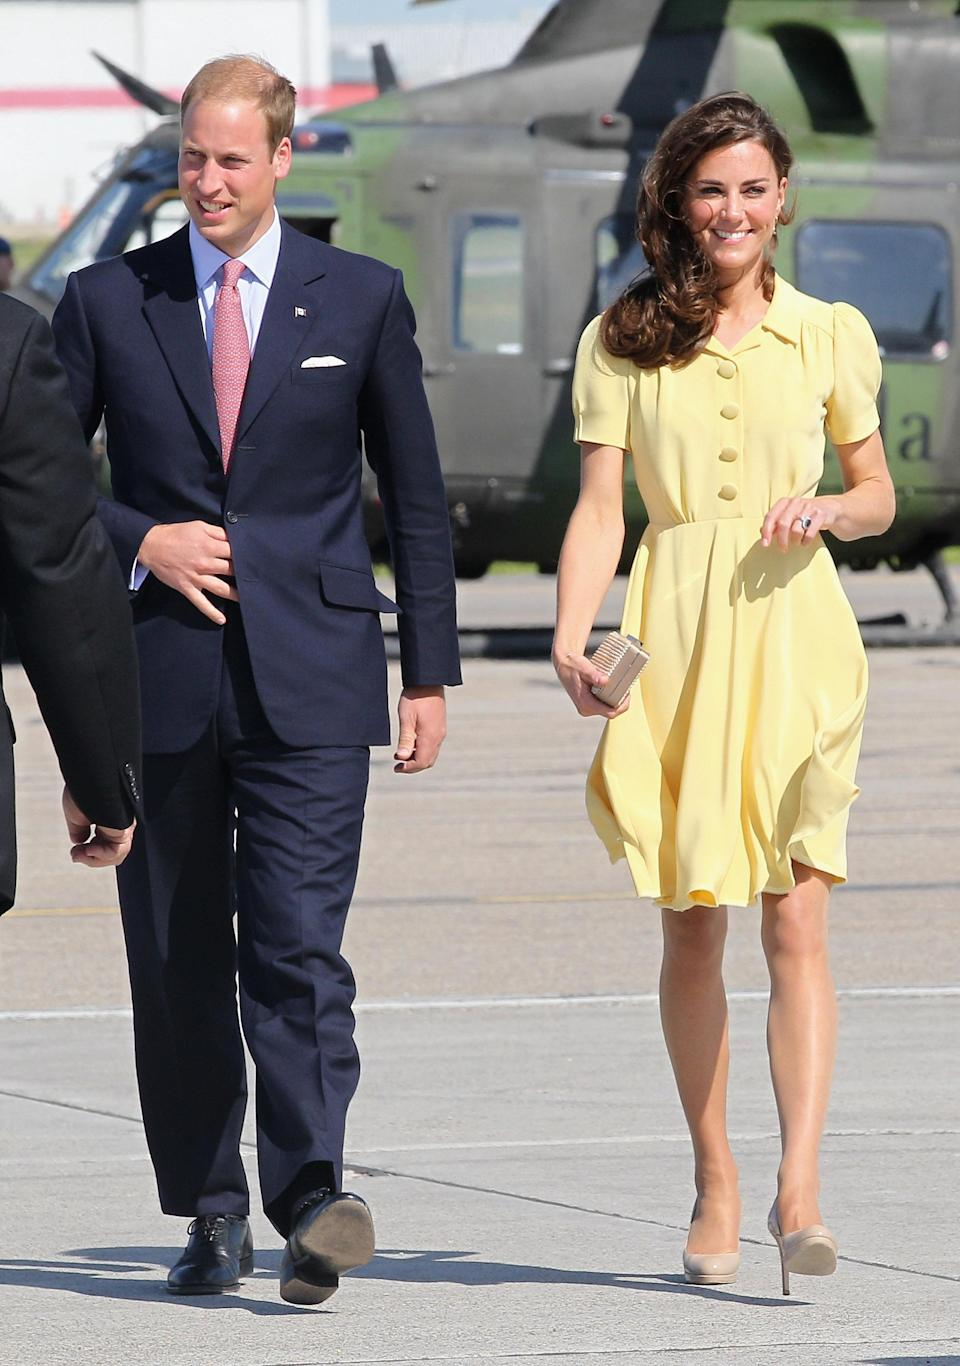 <p>The Duchess of Cambridge touched down in Calgary in style thanks to a punchy yellow dress by Jenny Packham. The Canadian pitstop marked their eighth day of their first overseas tour. [Photo: Getty] </p>